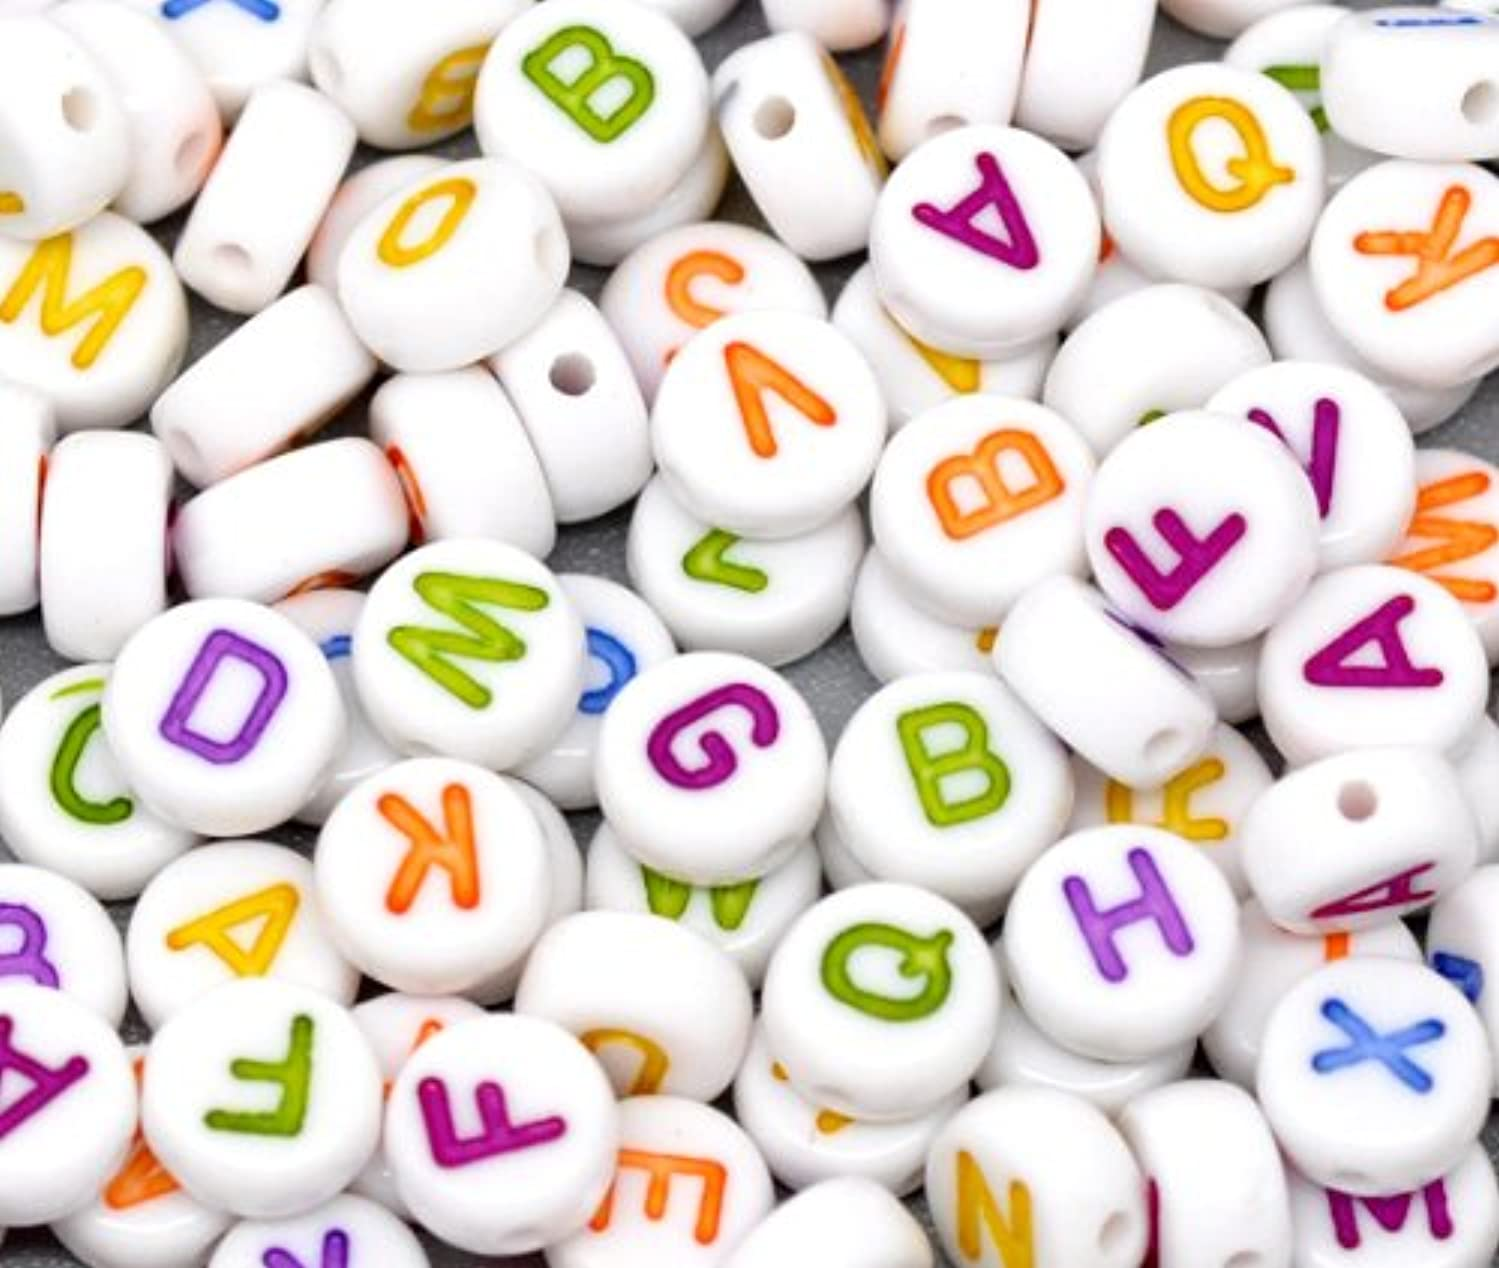 Letter Alphabet Spacer Beads 7mm (1/4), 500 Pc White with Mixed Color Letters